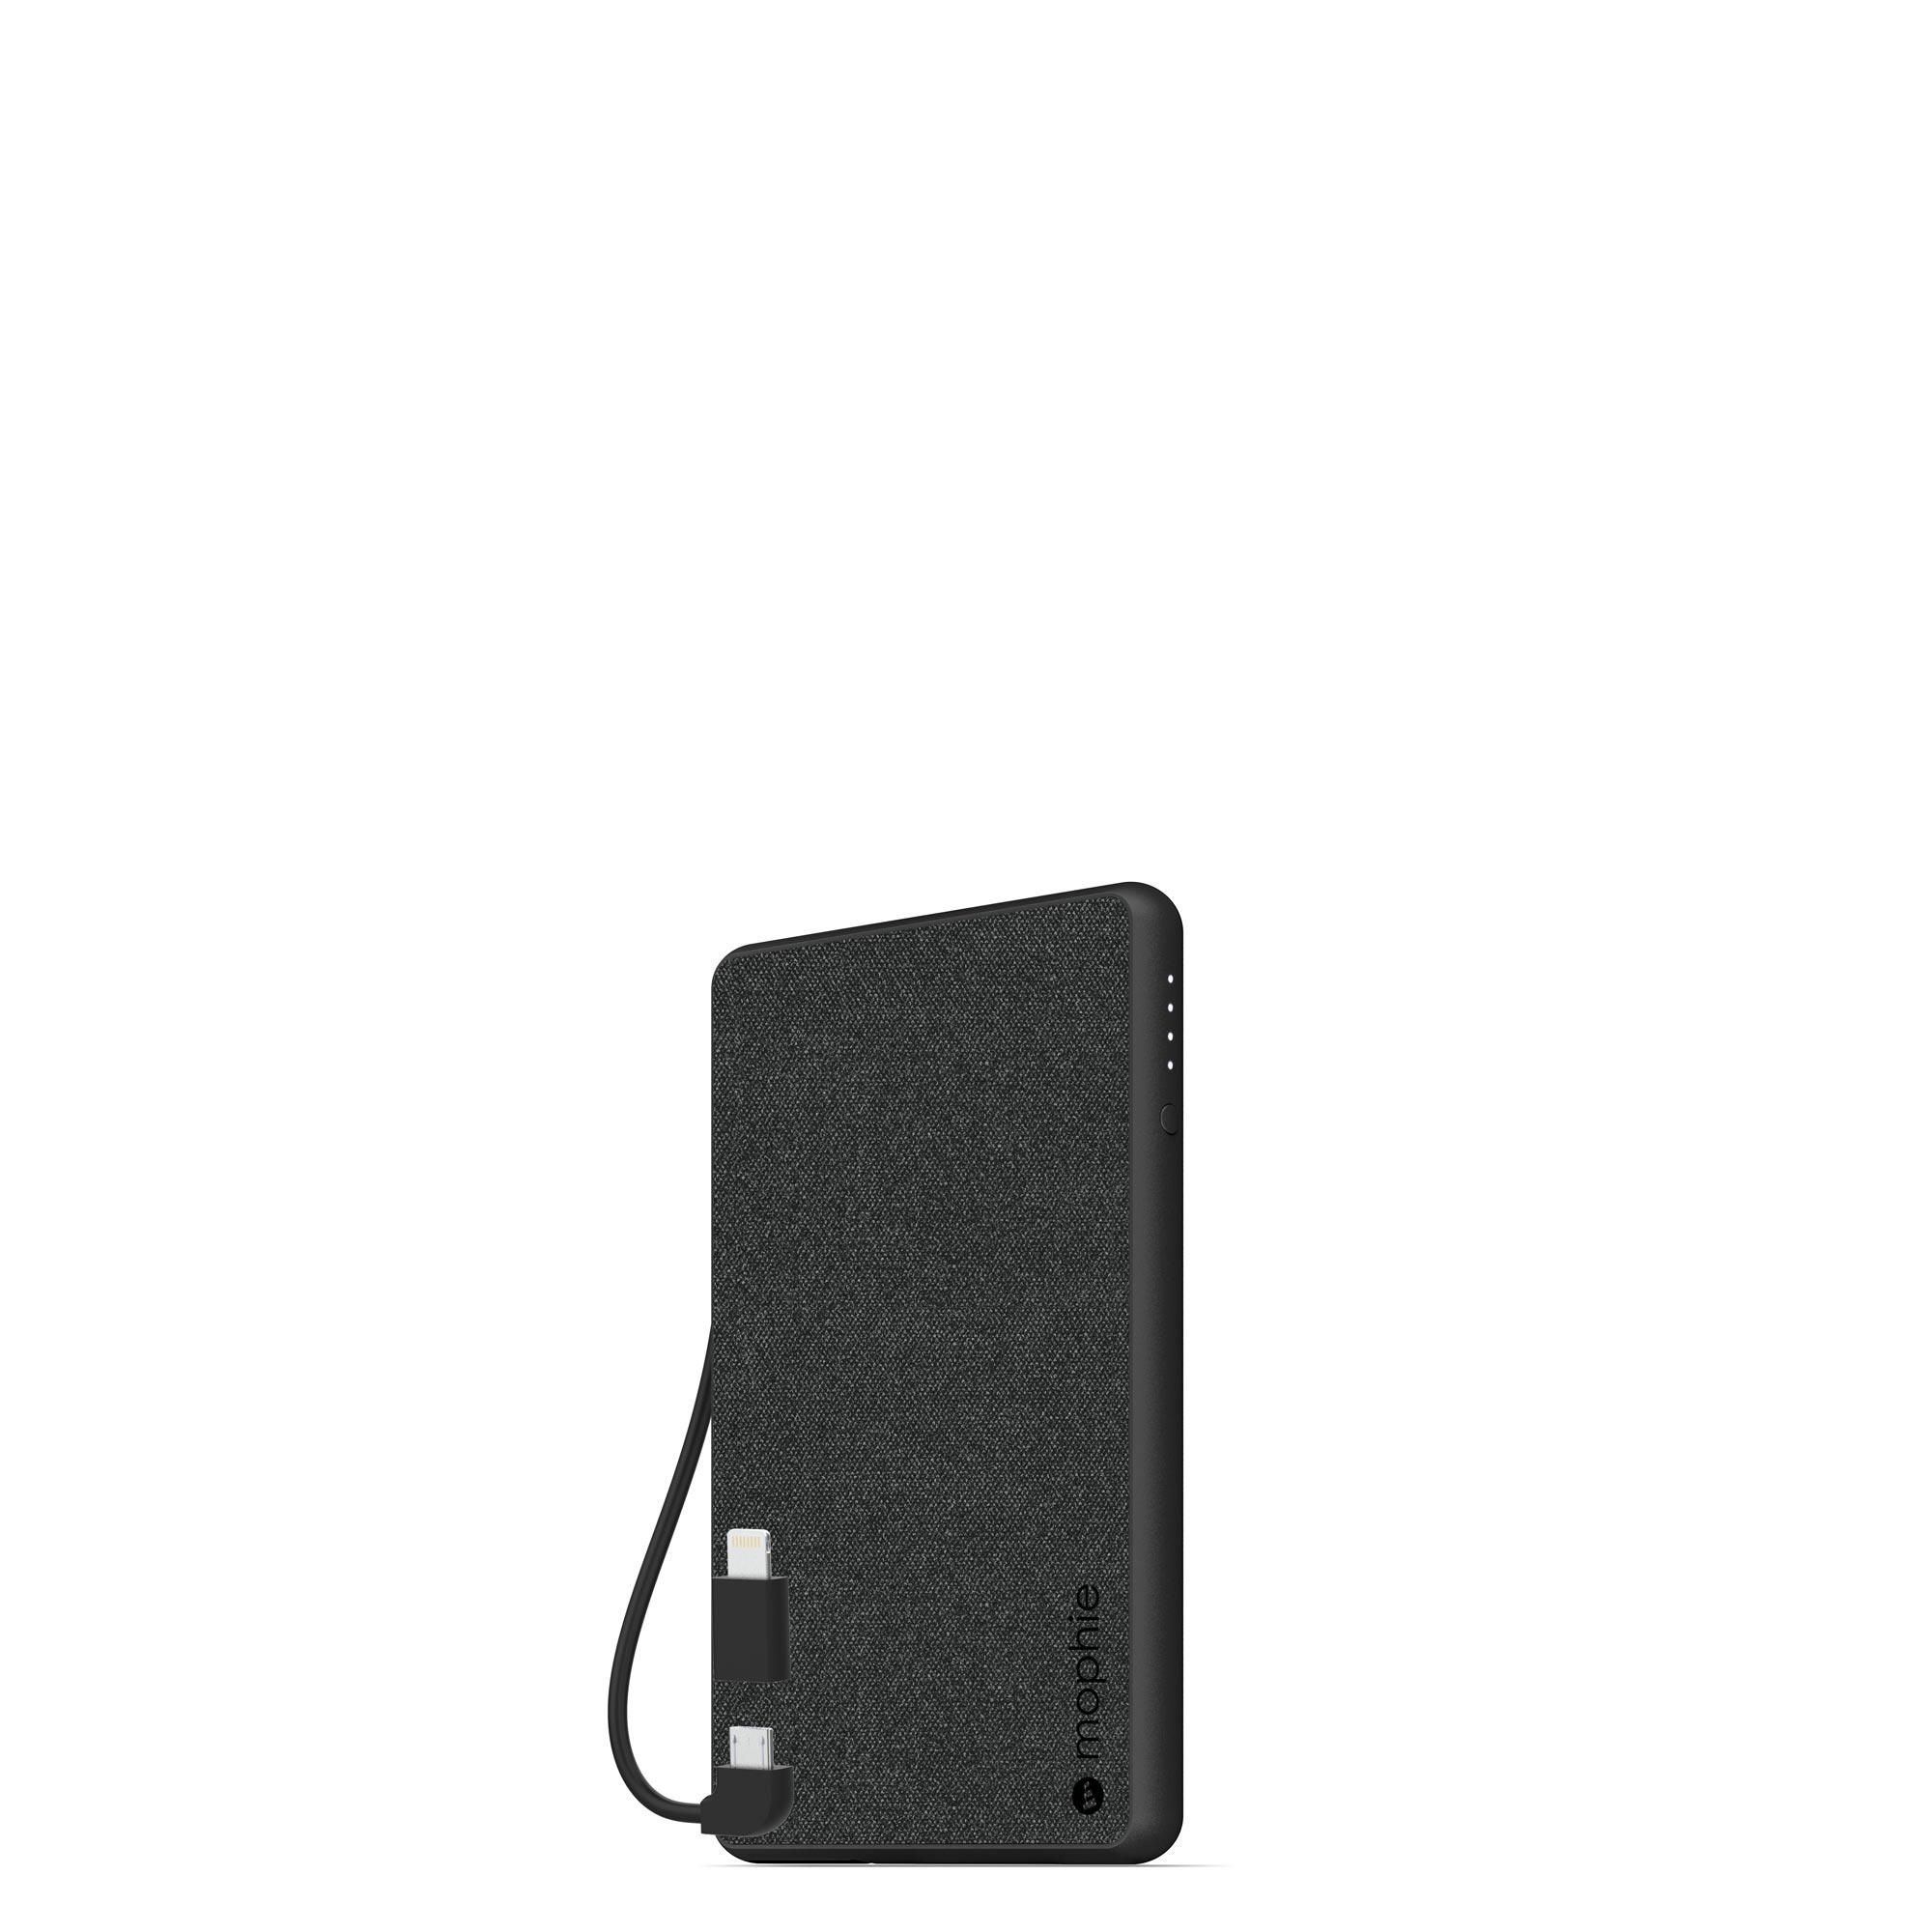 Mophie 401101676 power bank Black 4000 mAh